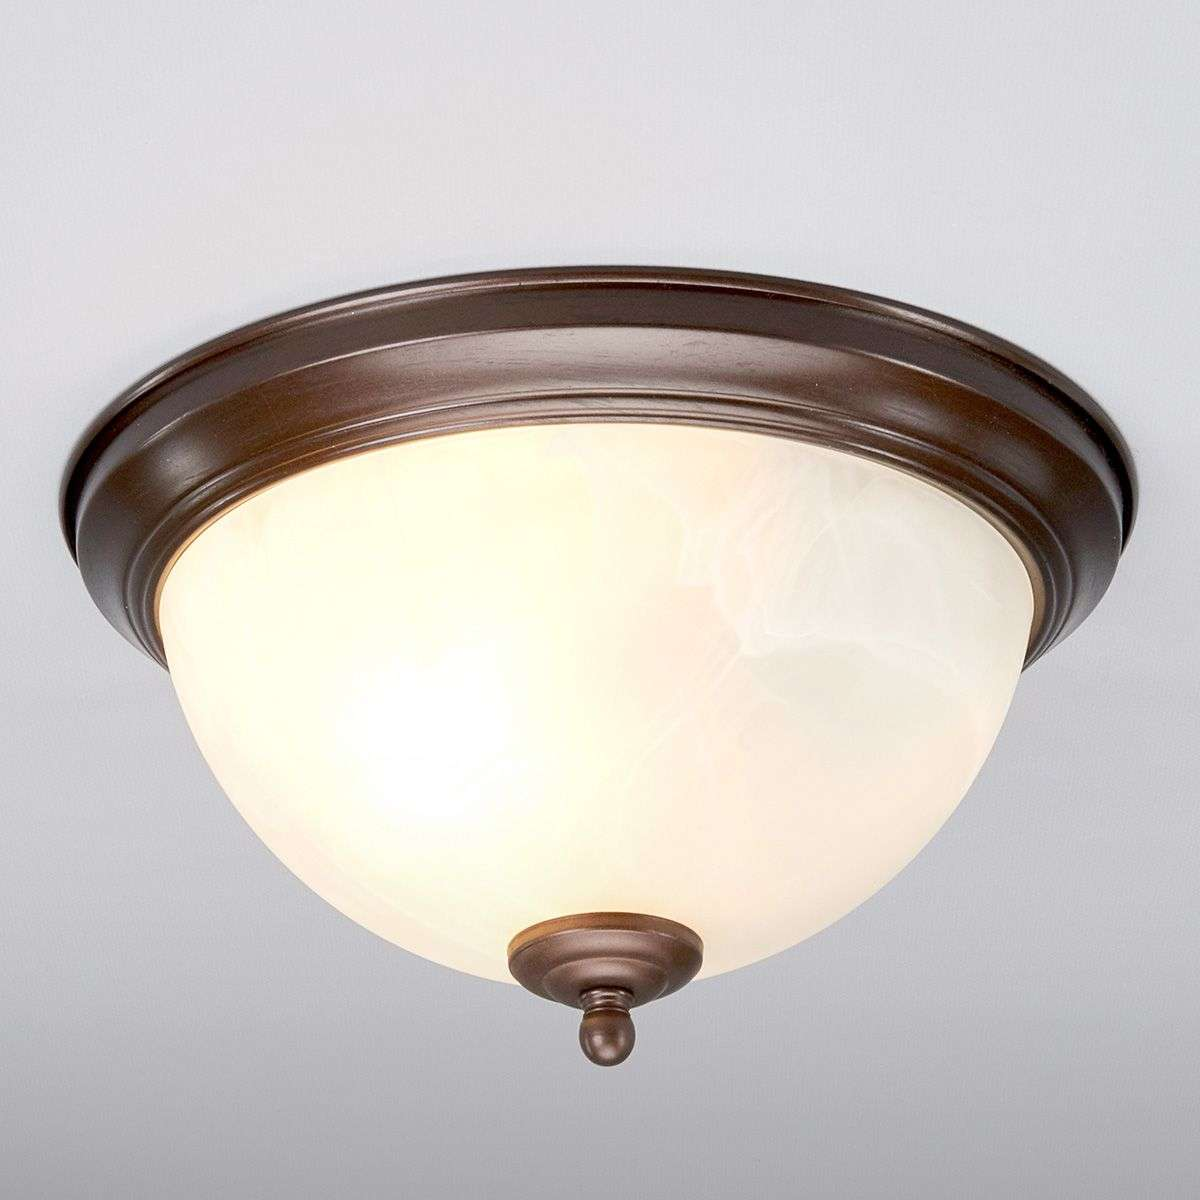 Bathroom Lights Rusting corvin bathroom ceiling light rust-coloured | lights.co.uk